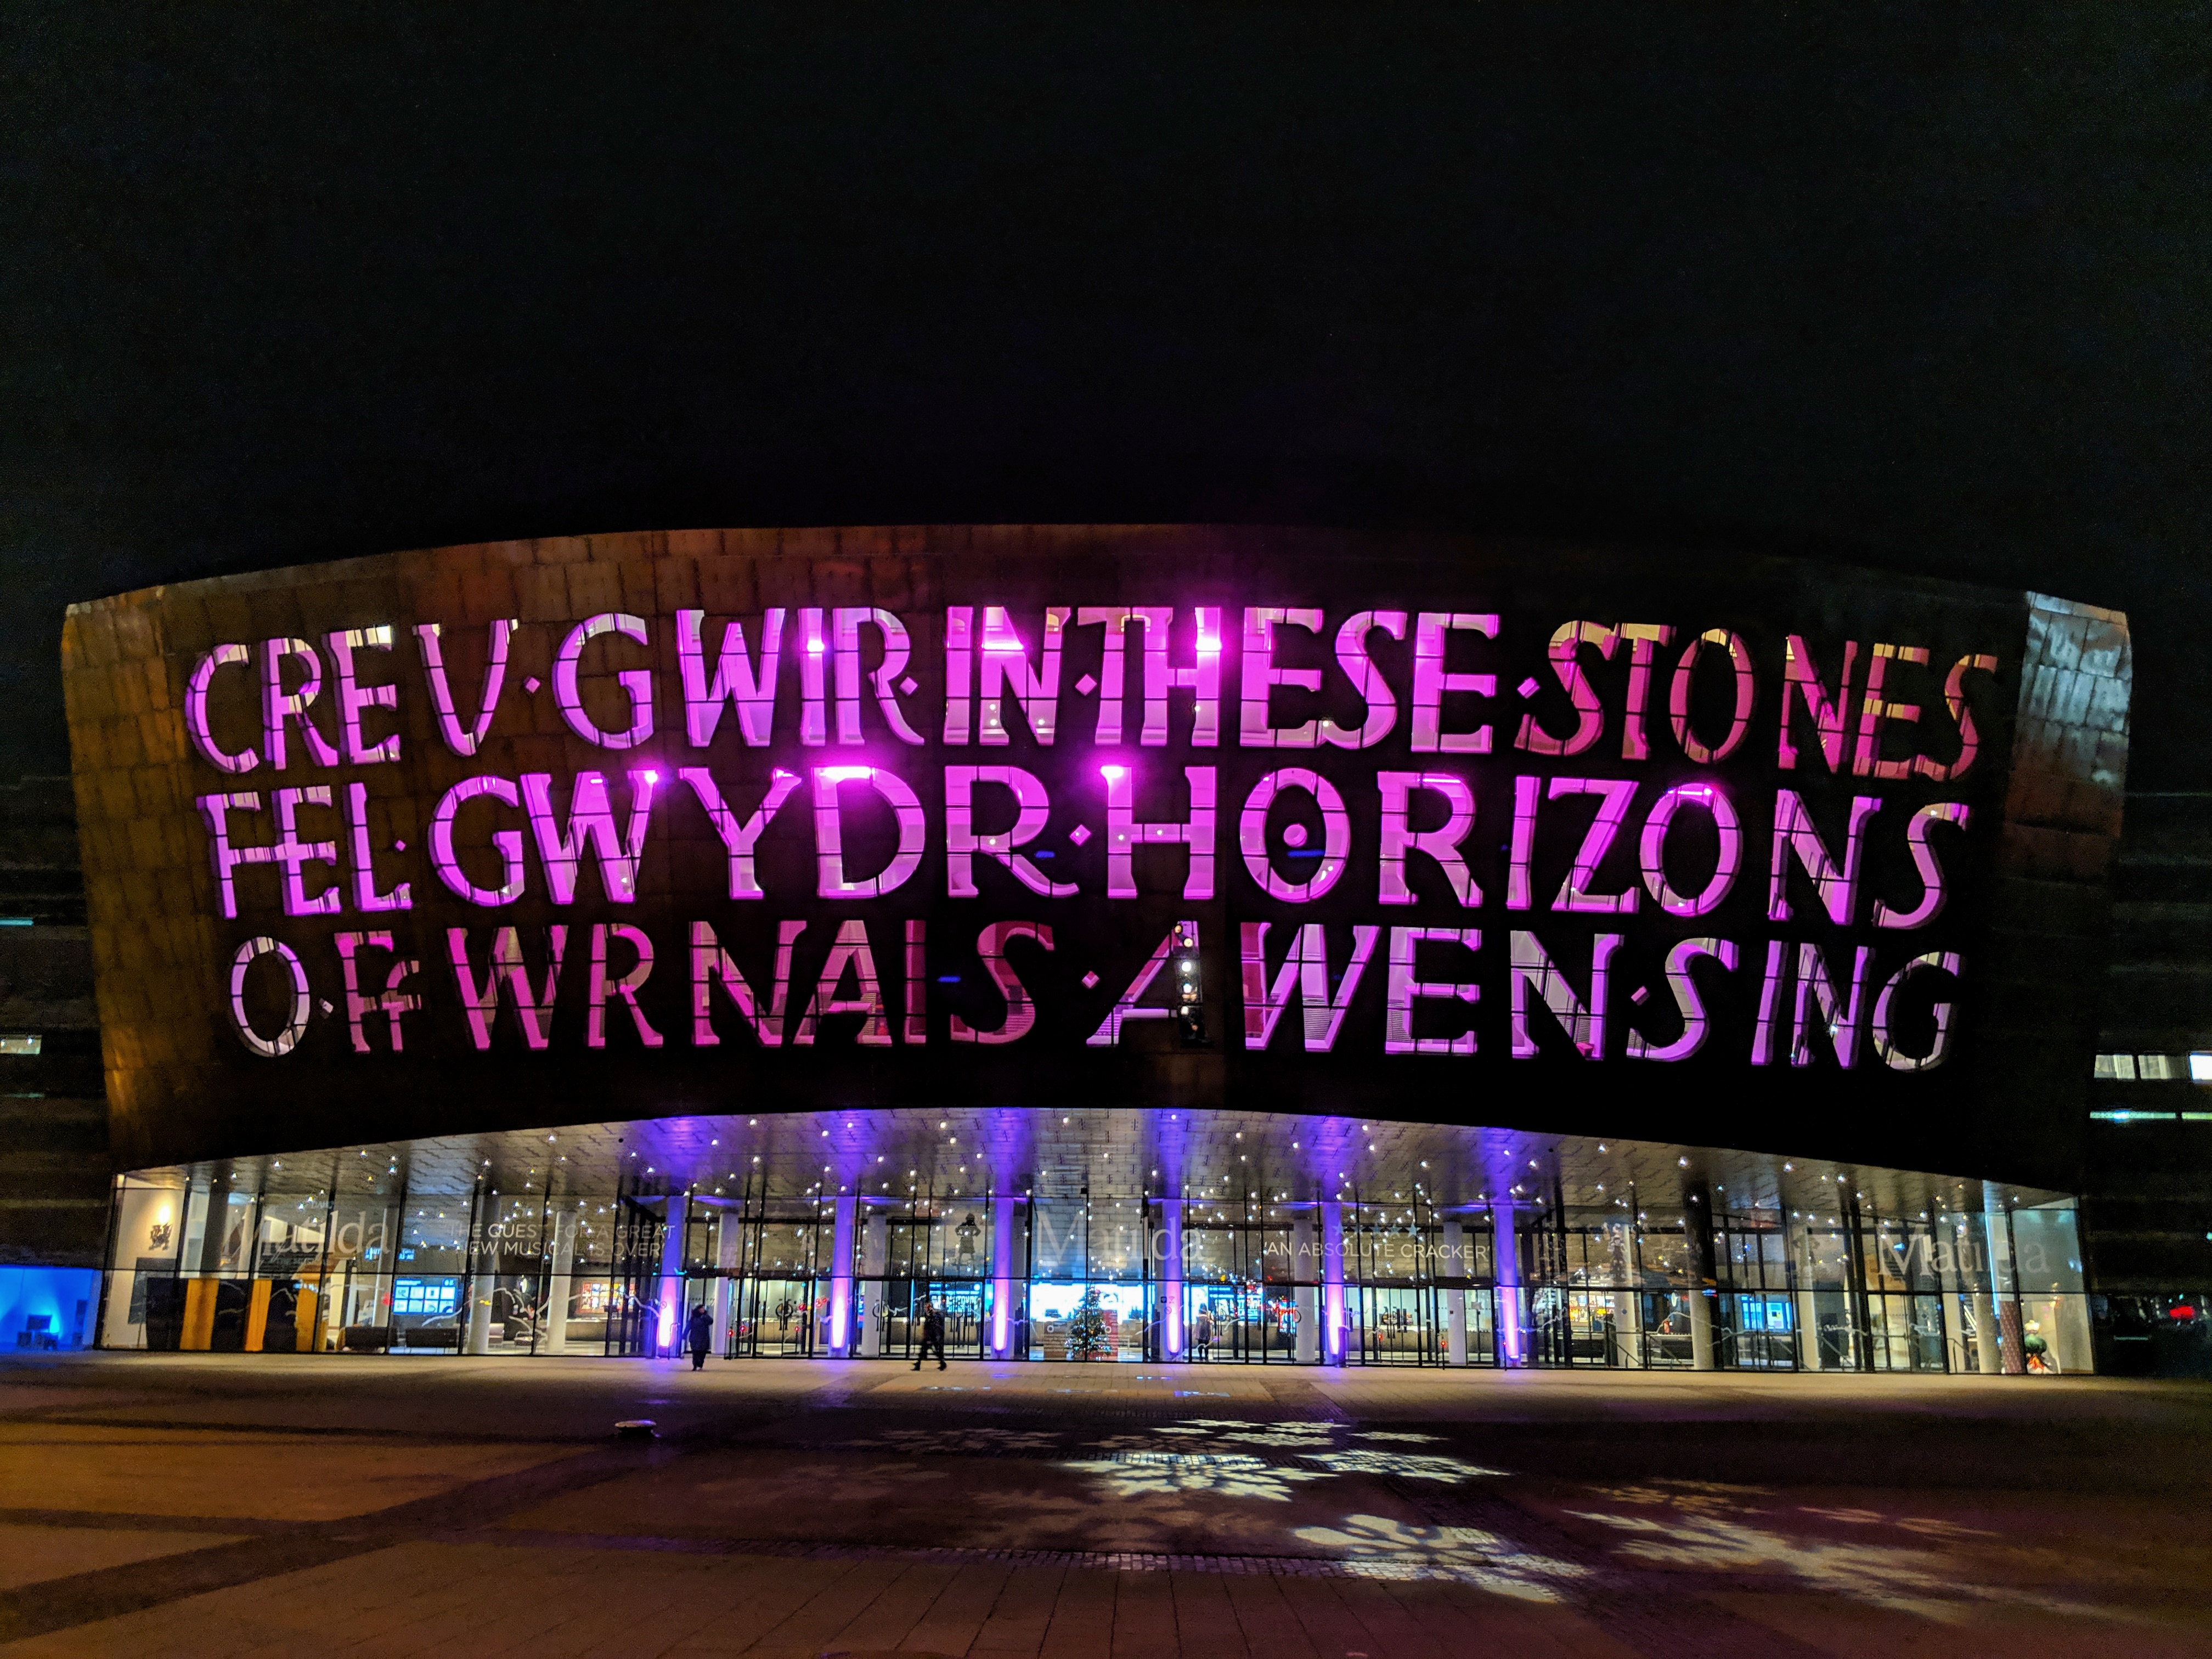 Wales Millennium Centre lighting up purple in Cardiff